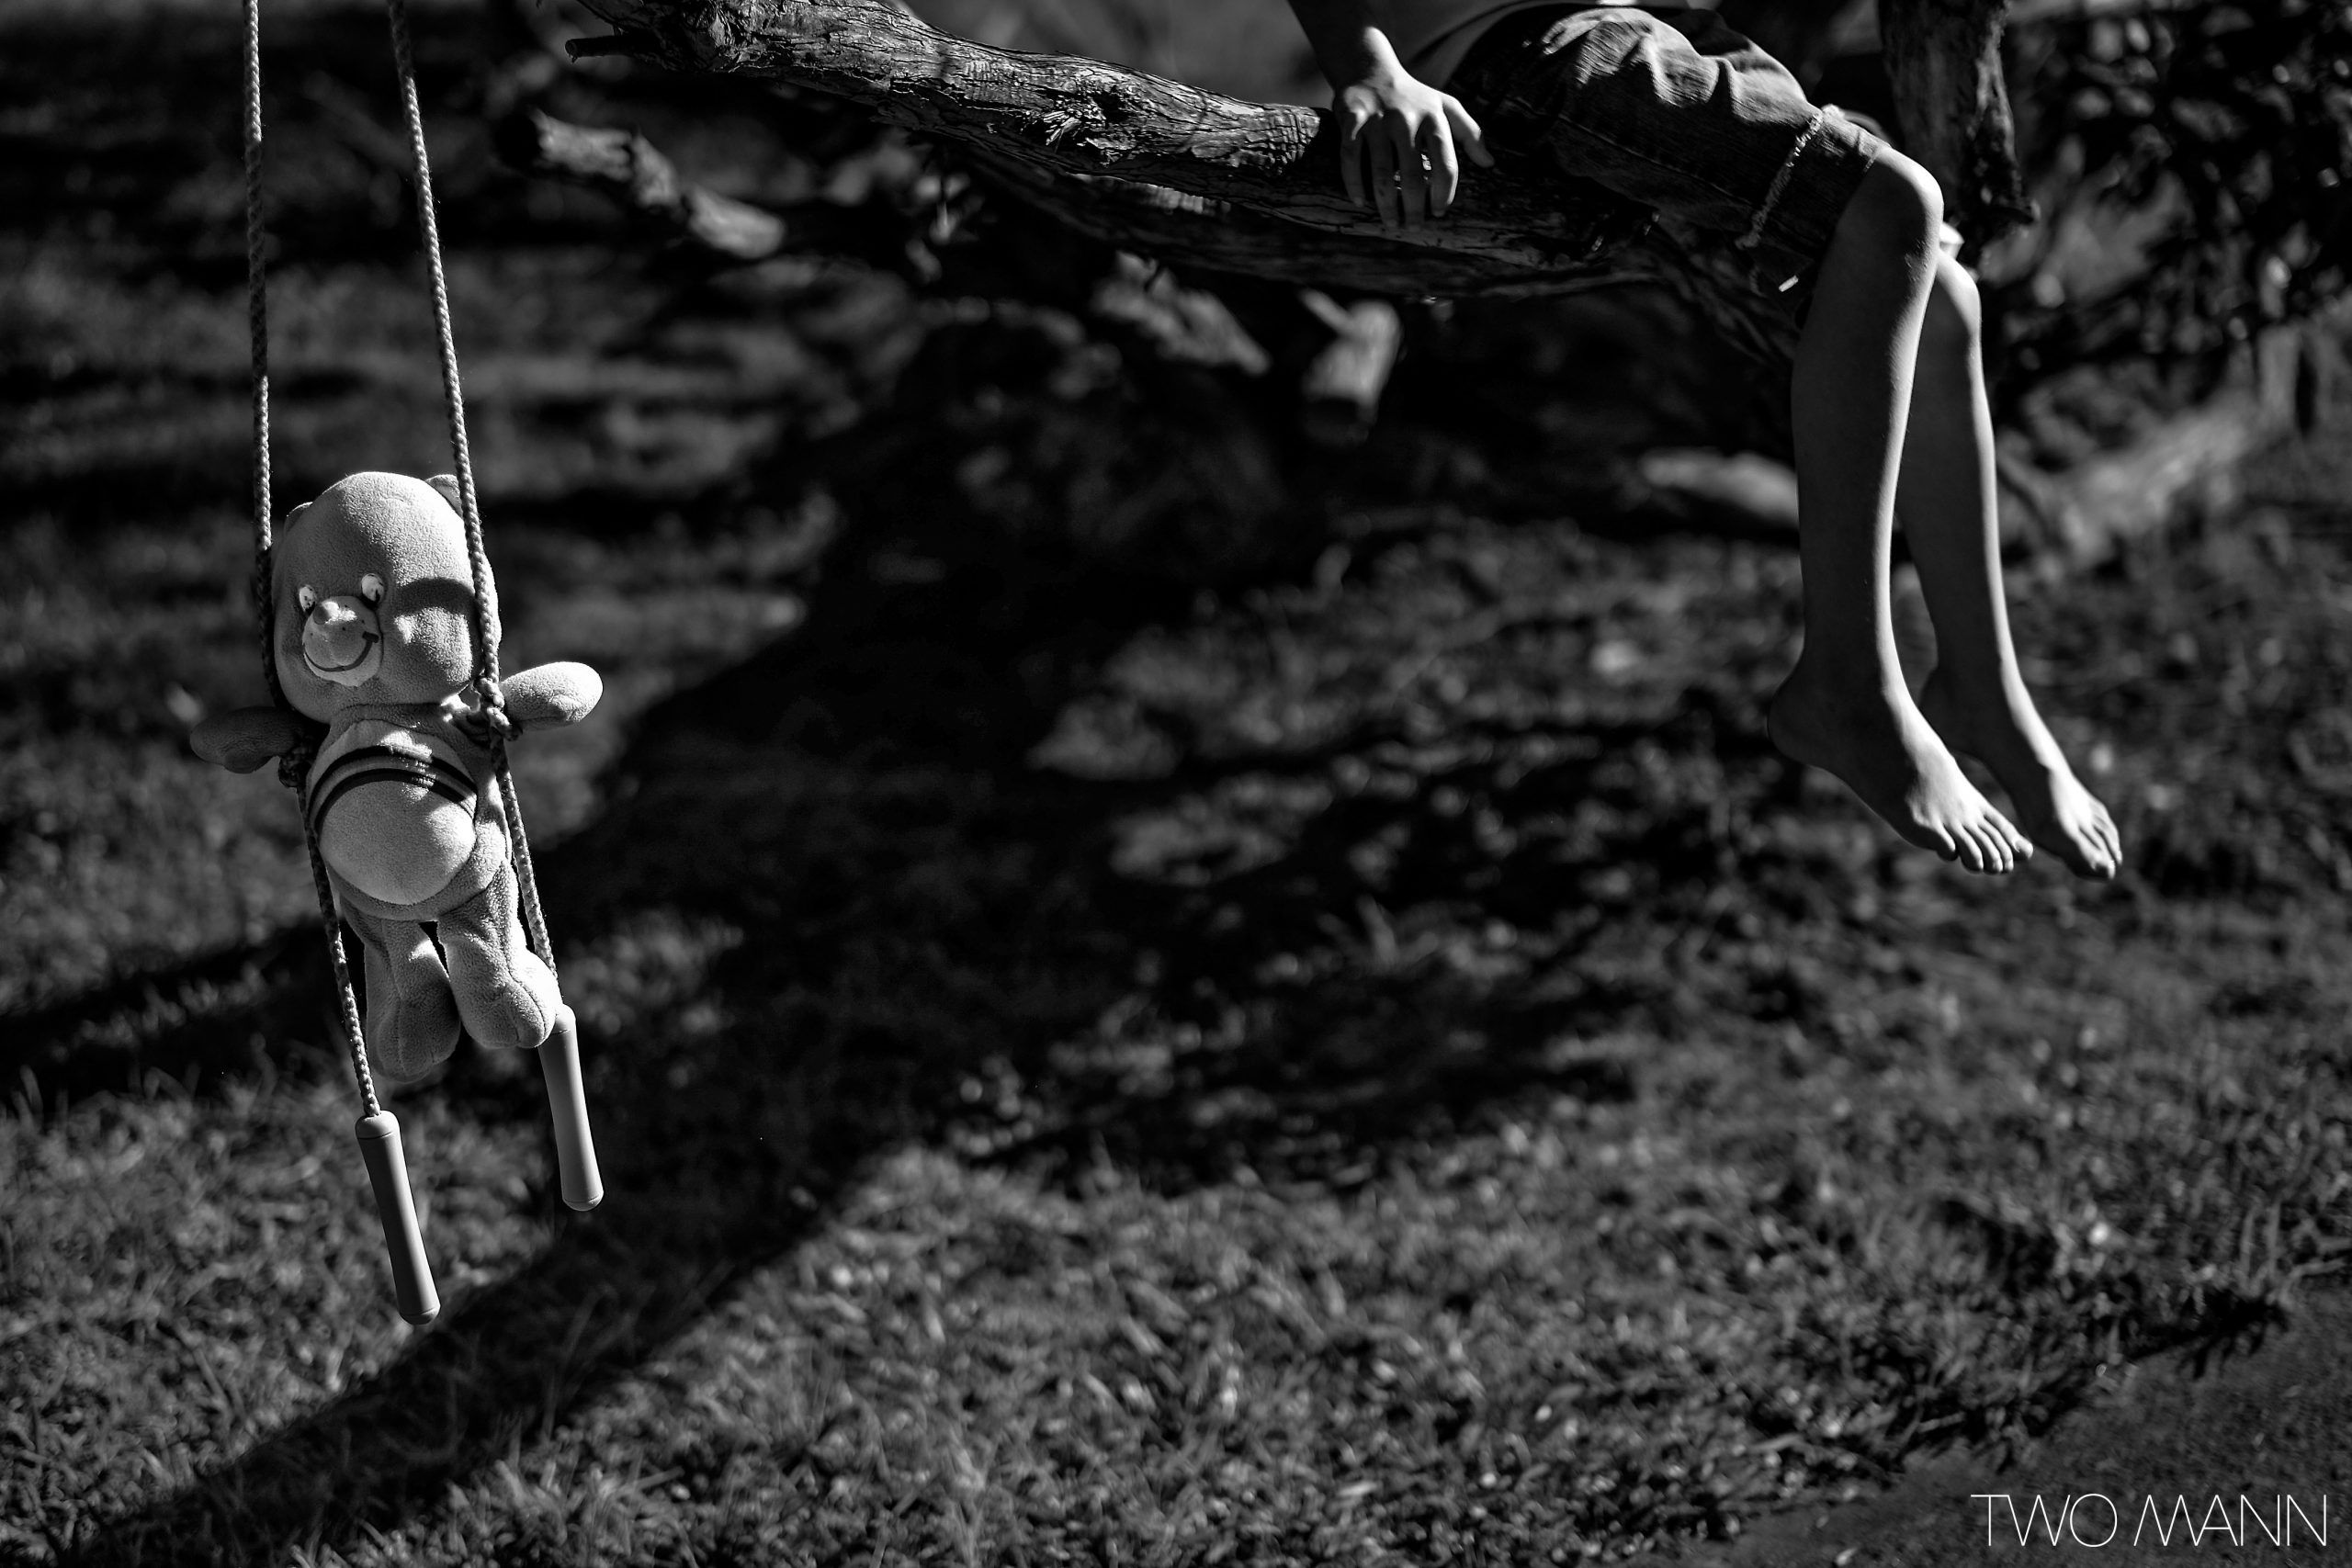 Stuffed teddy bear and skipping rope hanging on a tree branch